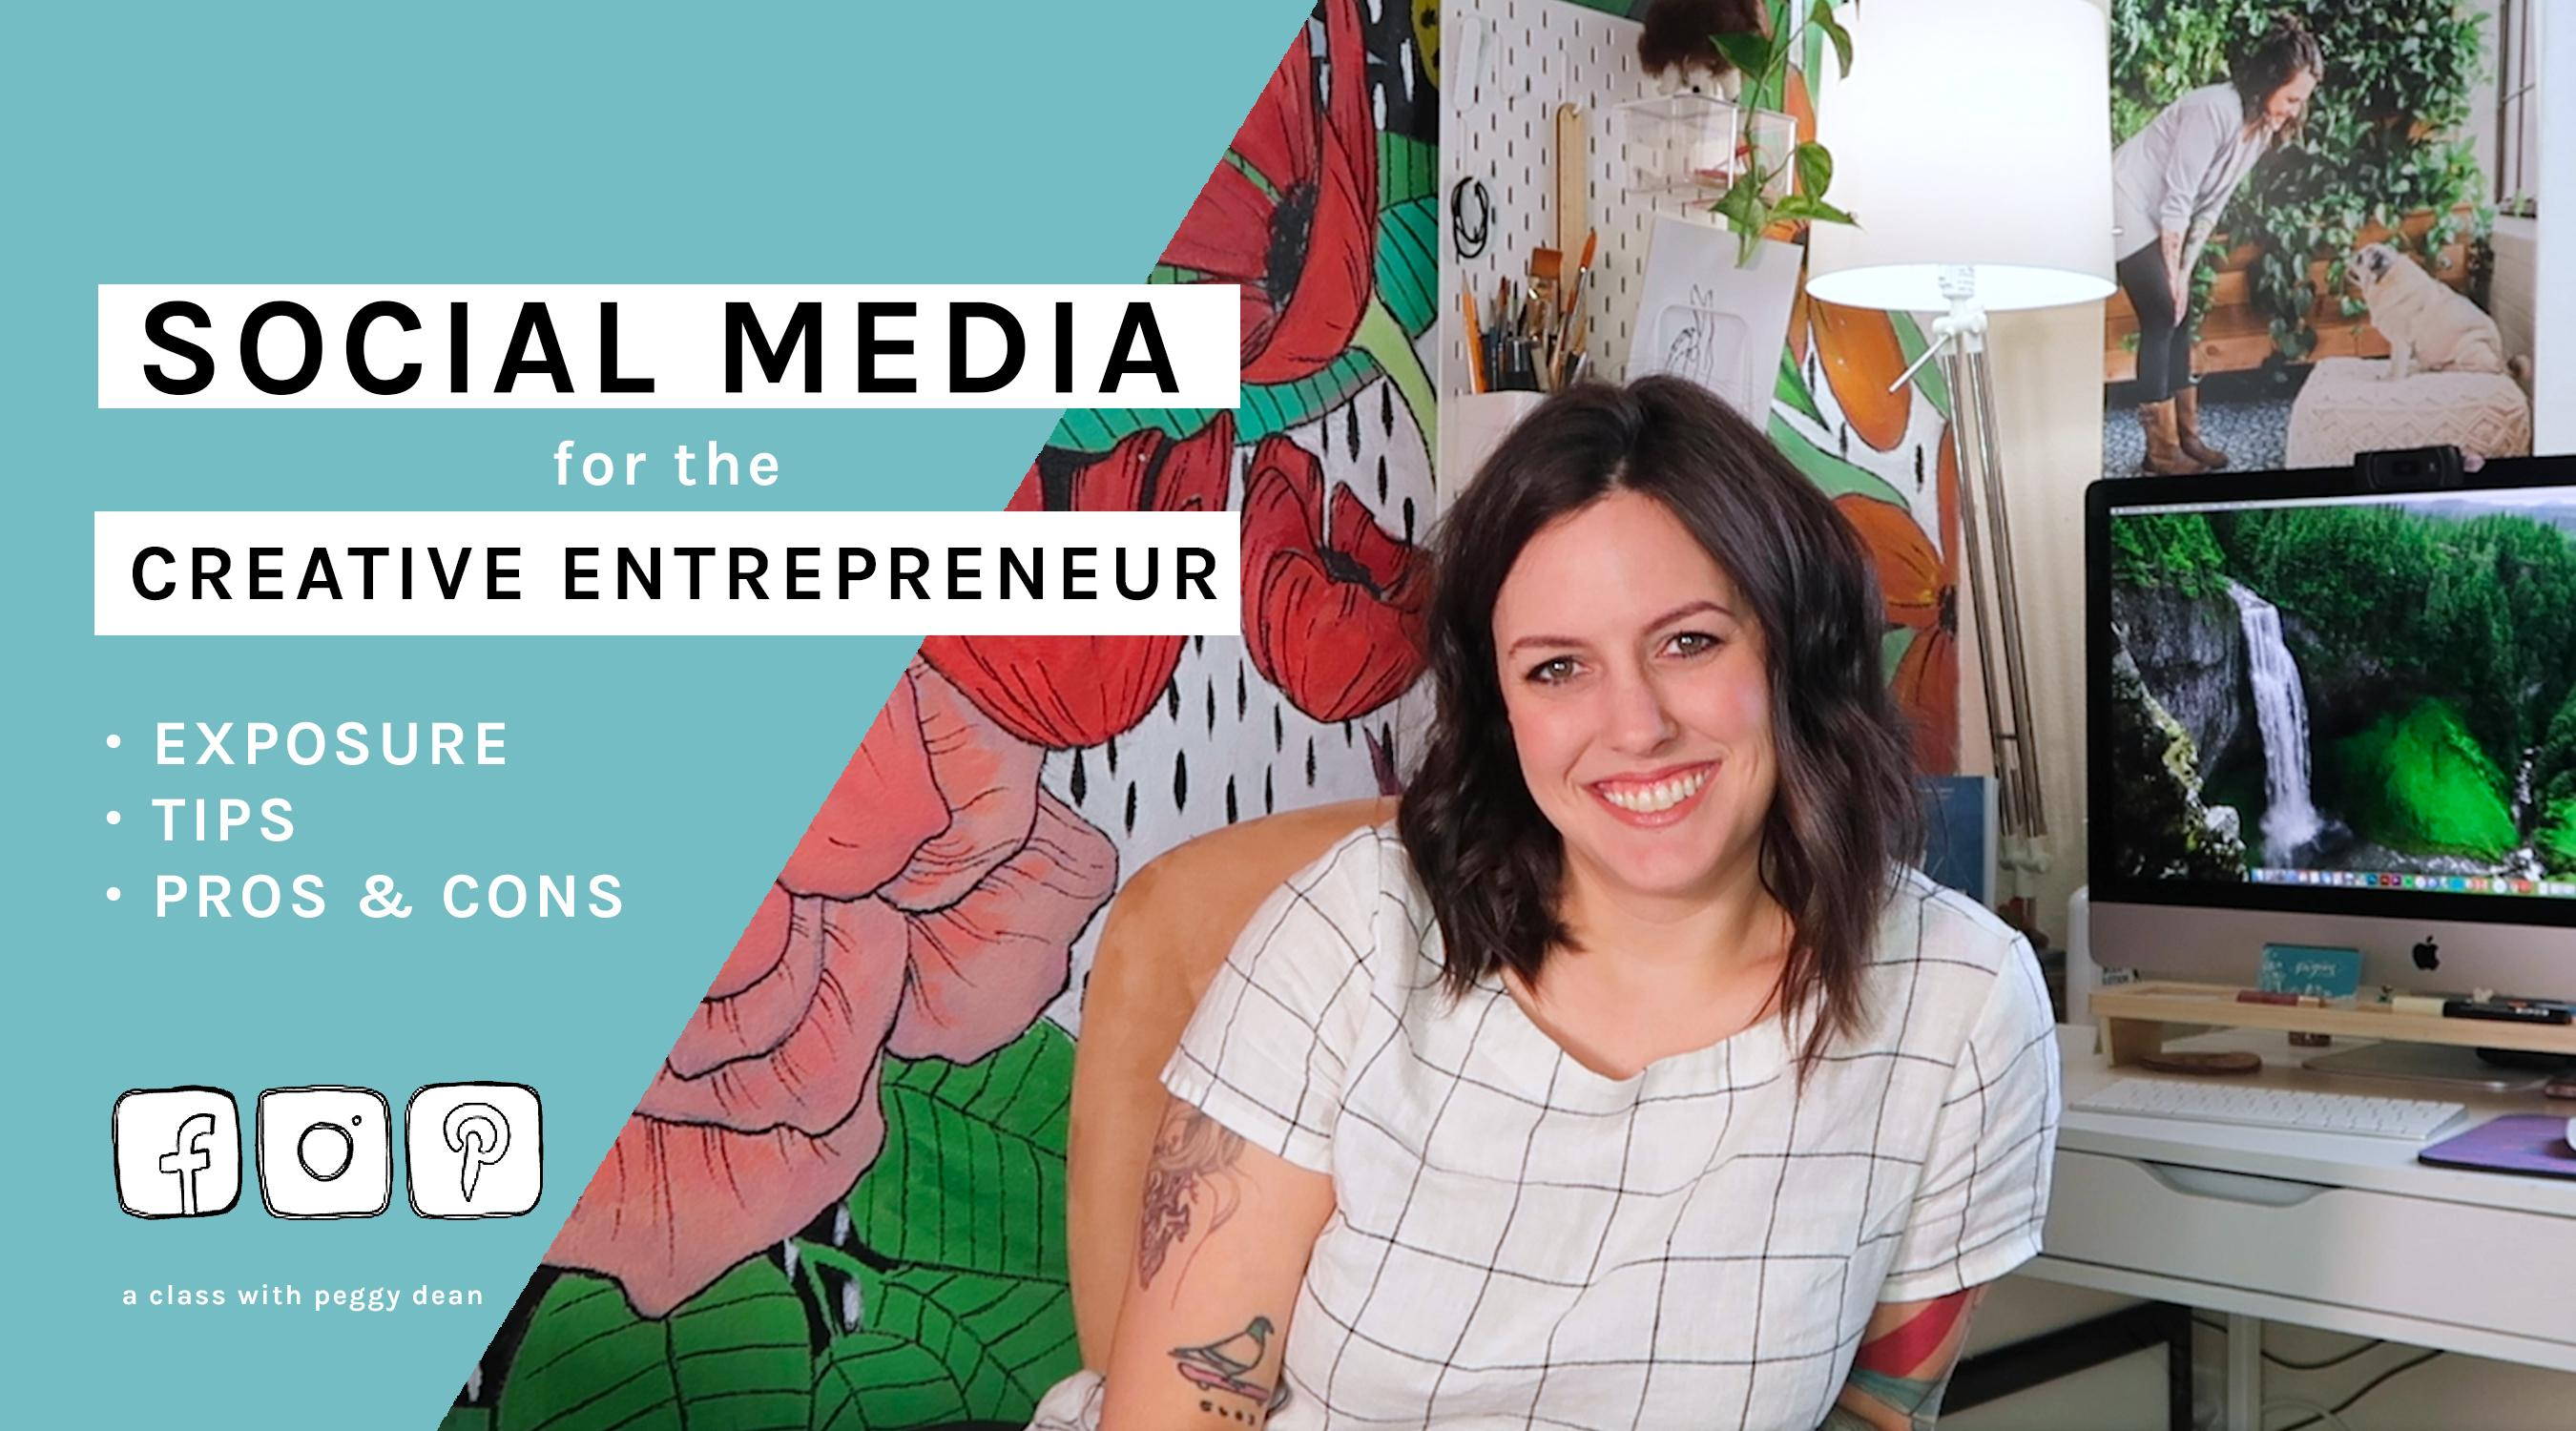 Social Media for the Creative Entrepreneur: Exposure, Tips, and Pros and Cons Image